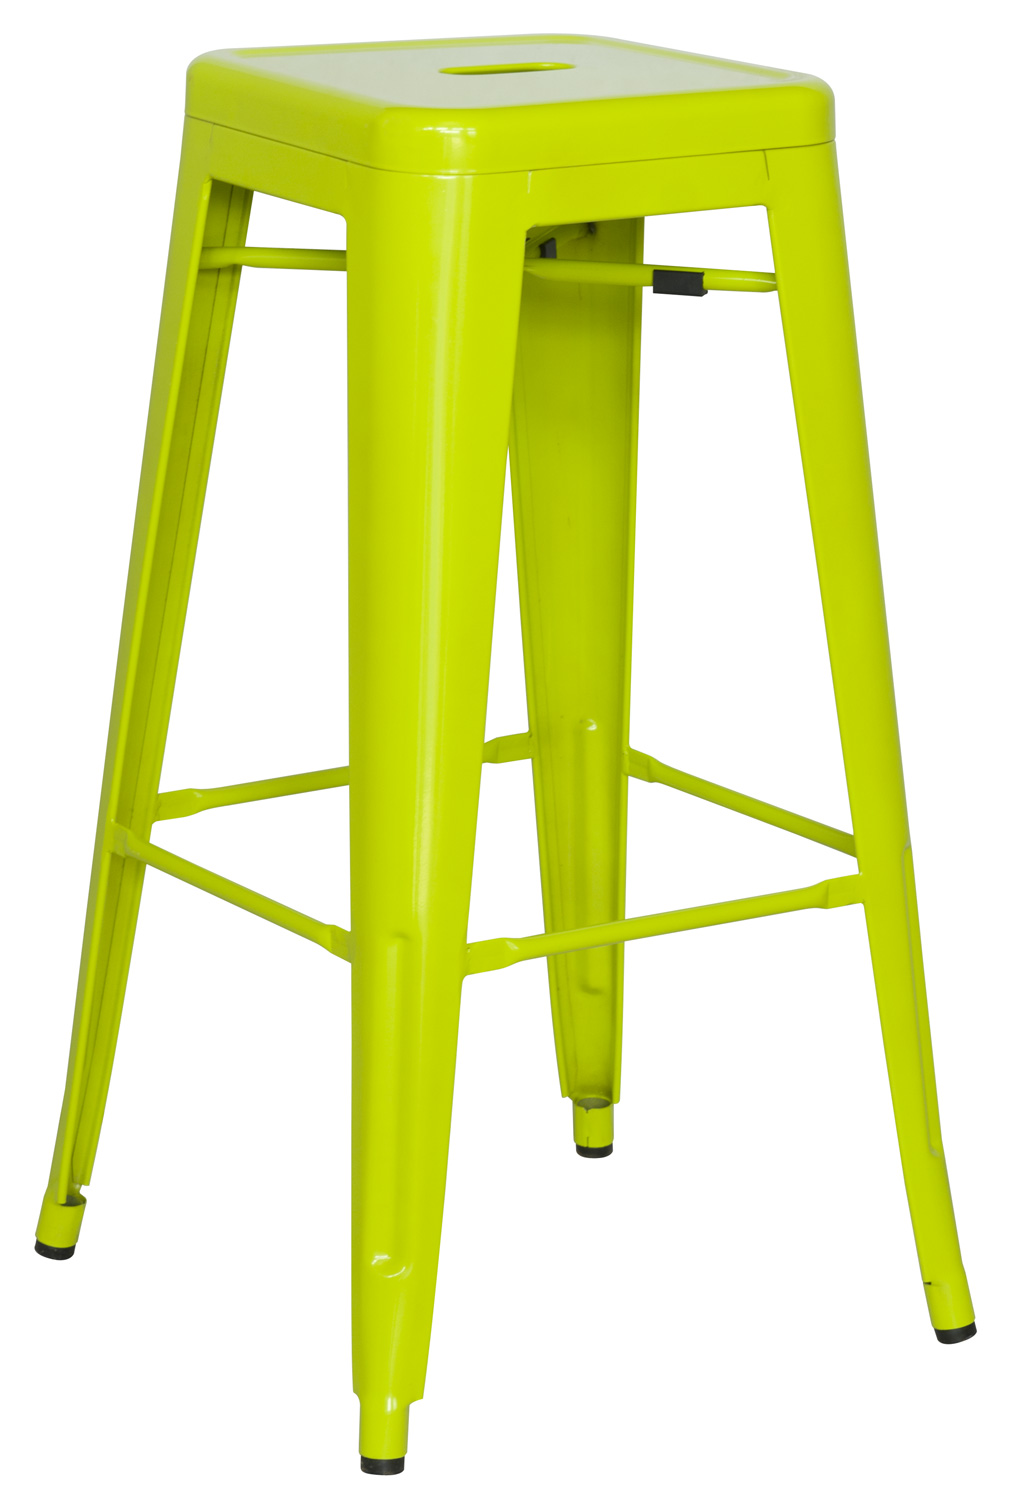 Chintaly Imports 8015 Galvanized Steel Bar Stool - Lime Green